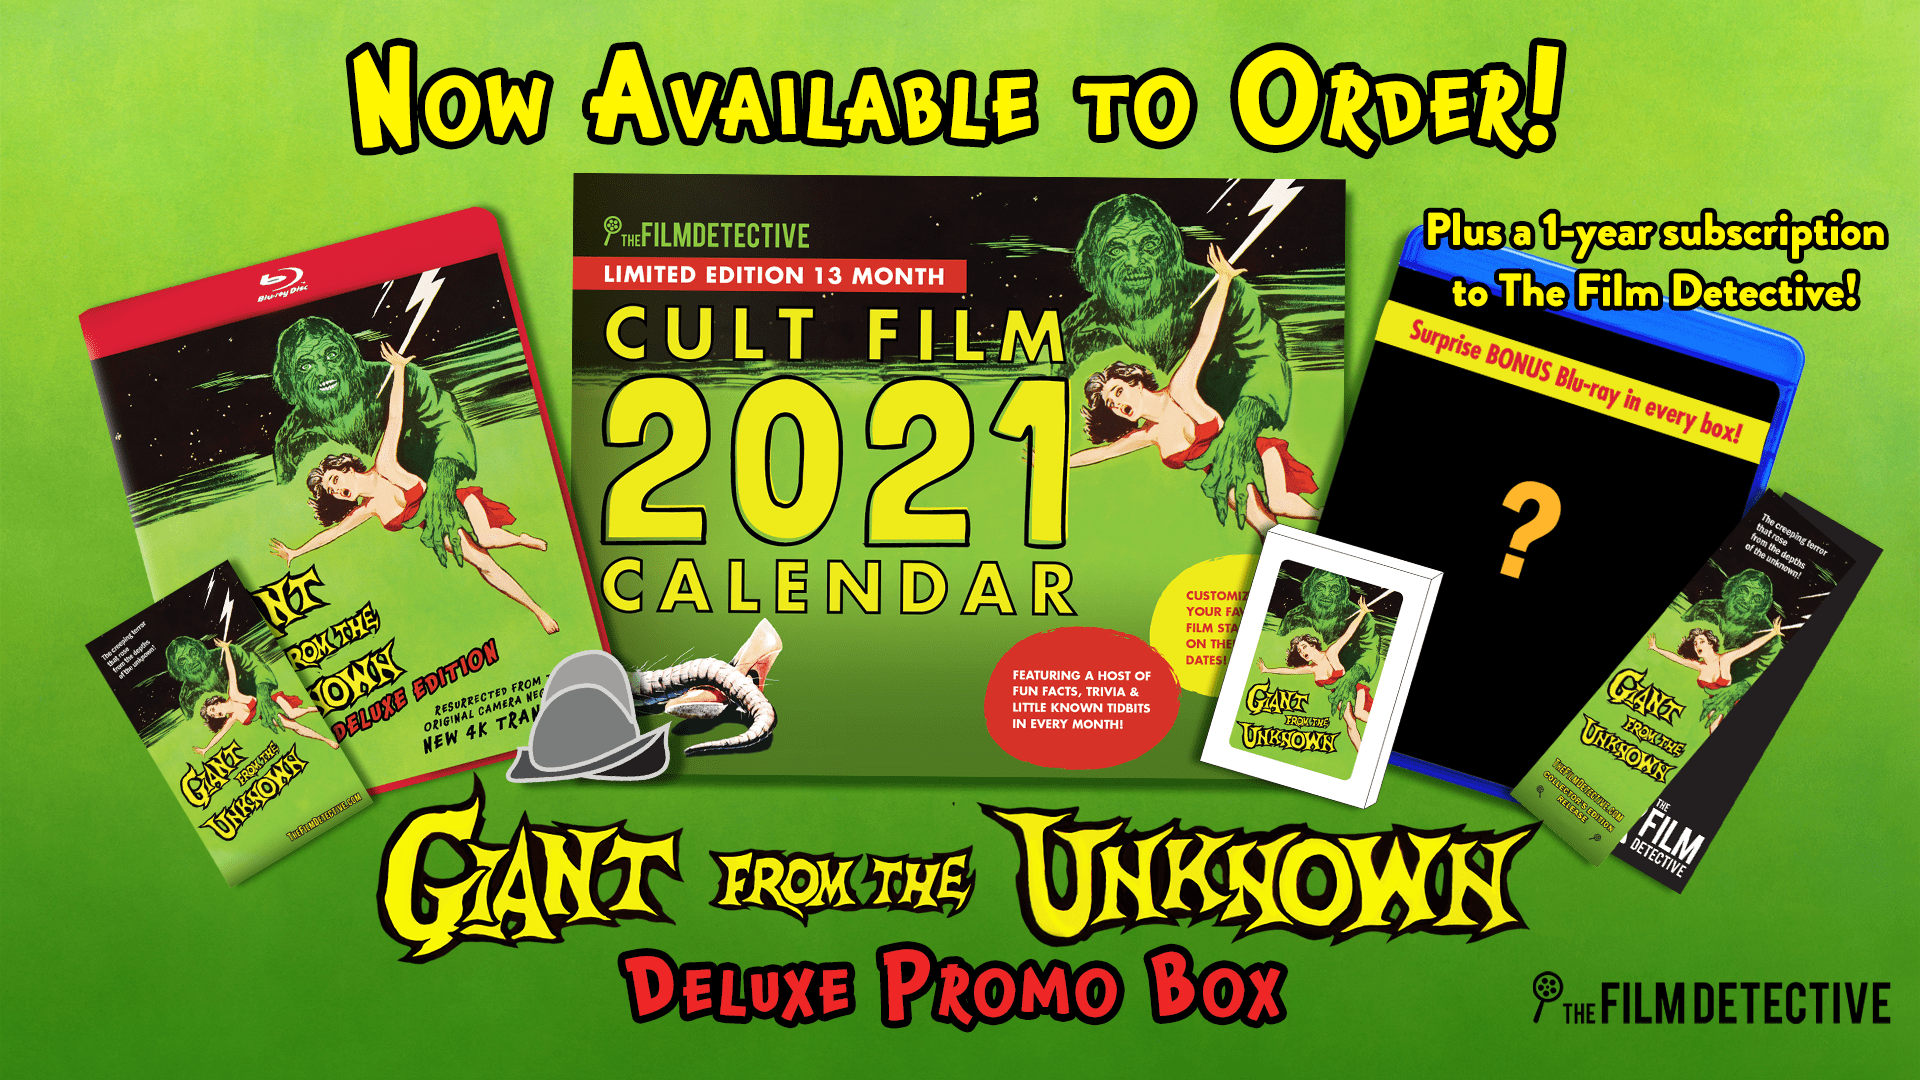 Limited Edition GIANT FROM THE UNKNOWN Blu-ray & DVD Box Sets Available from The Film Detective (USA / 20 November)